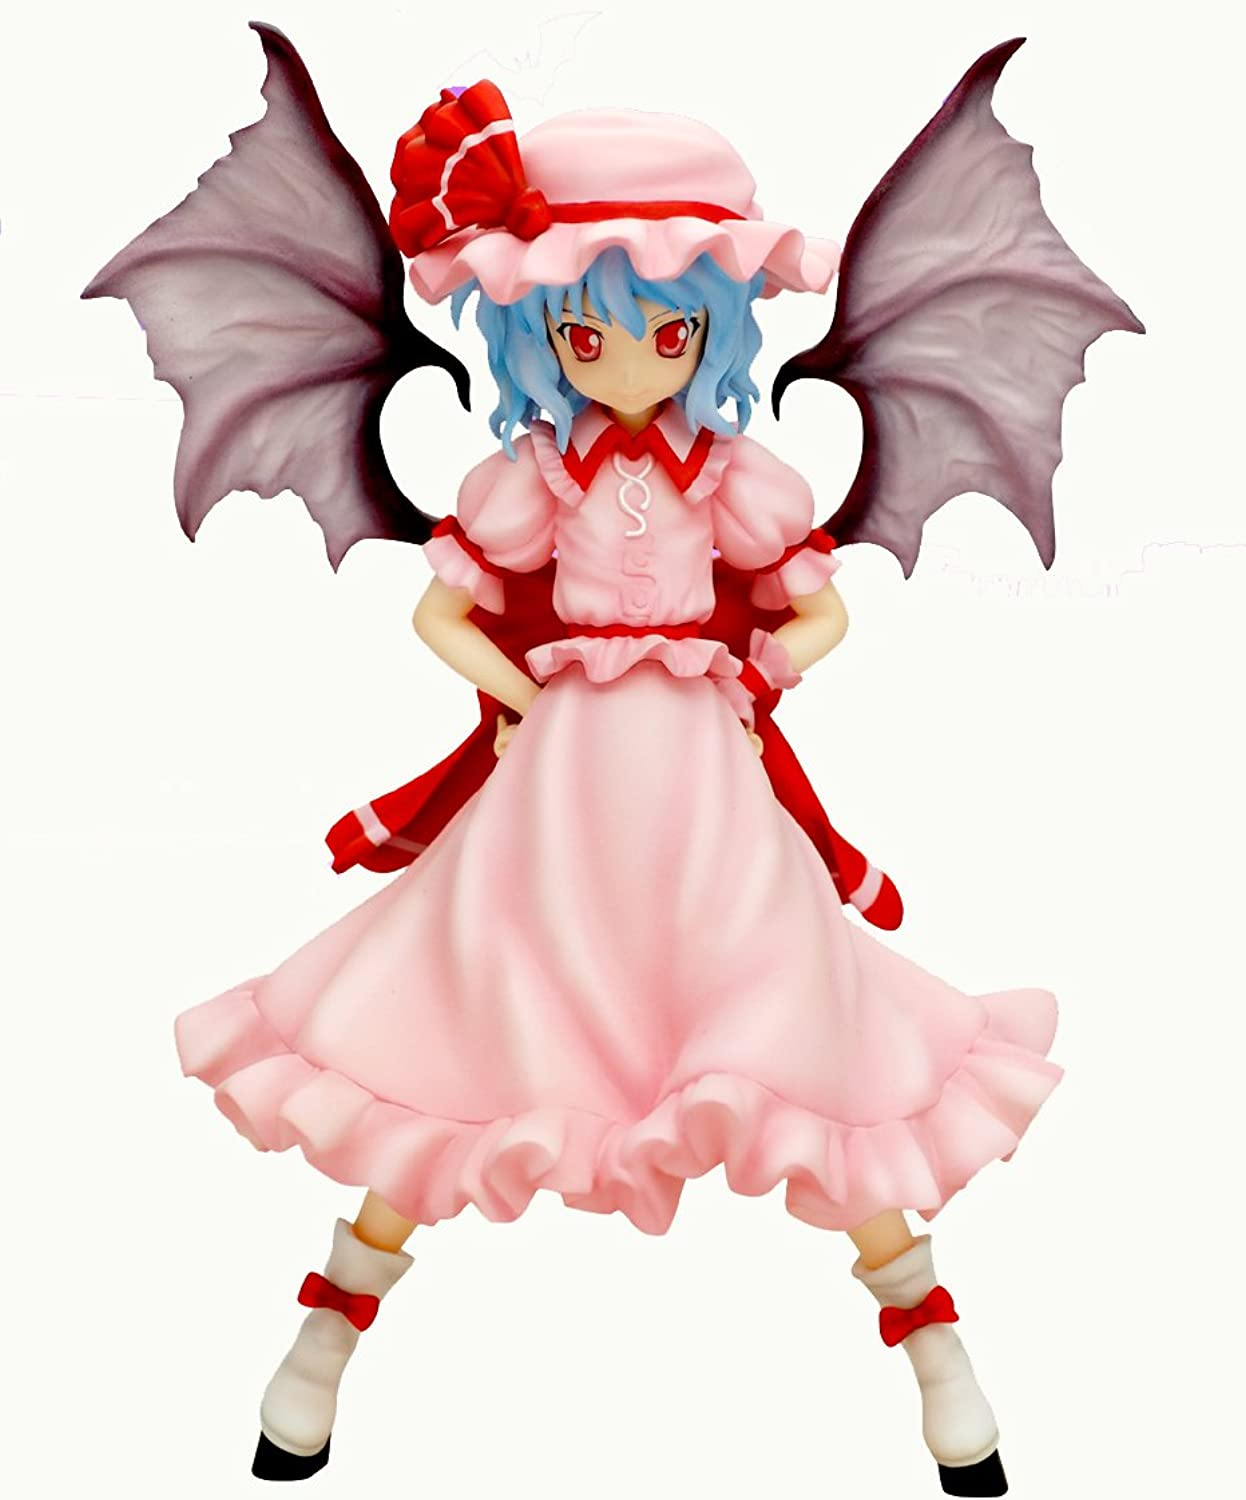 Touhou Project Remilia Scarlet 1 8 PVC Figure [Import]